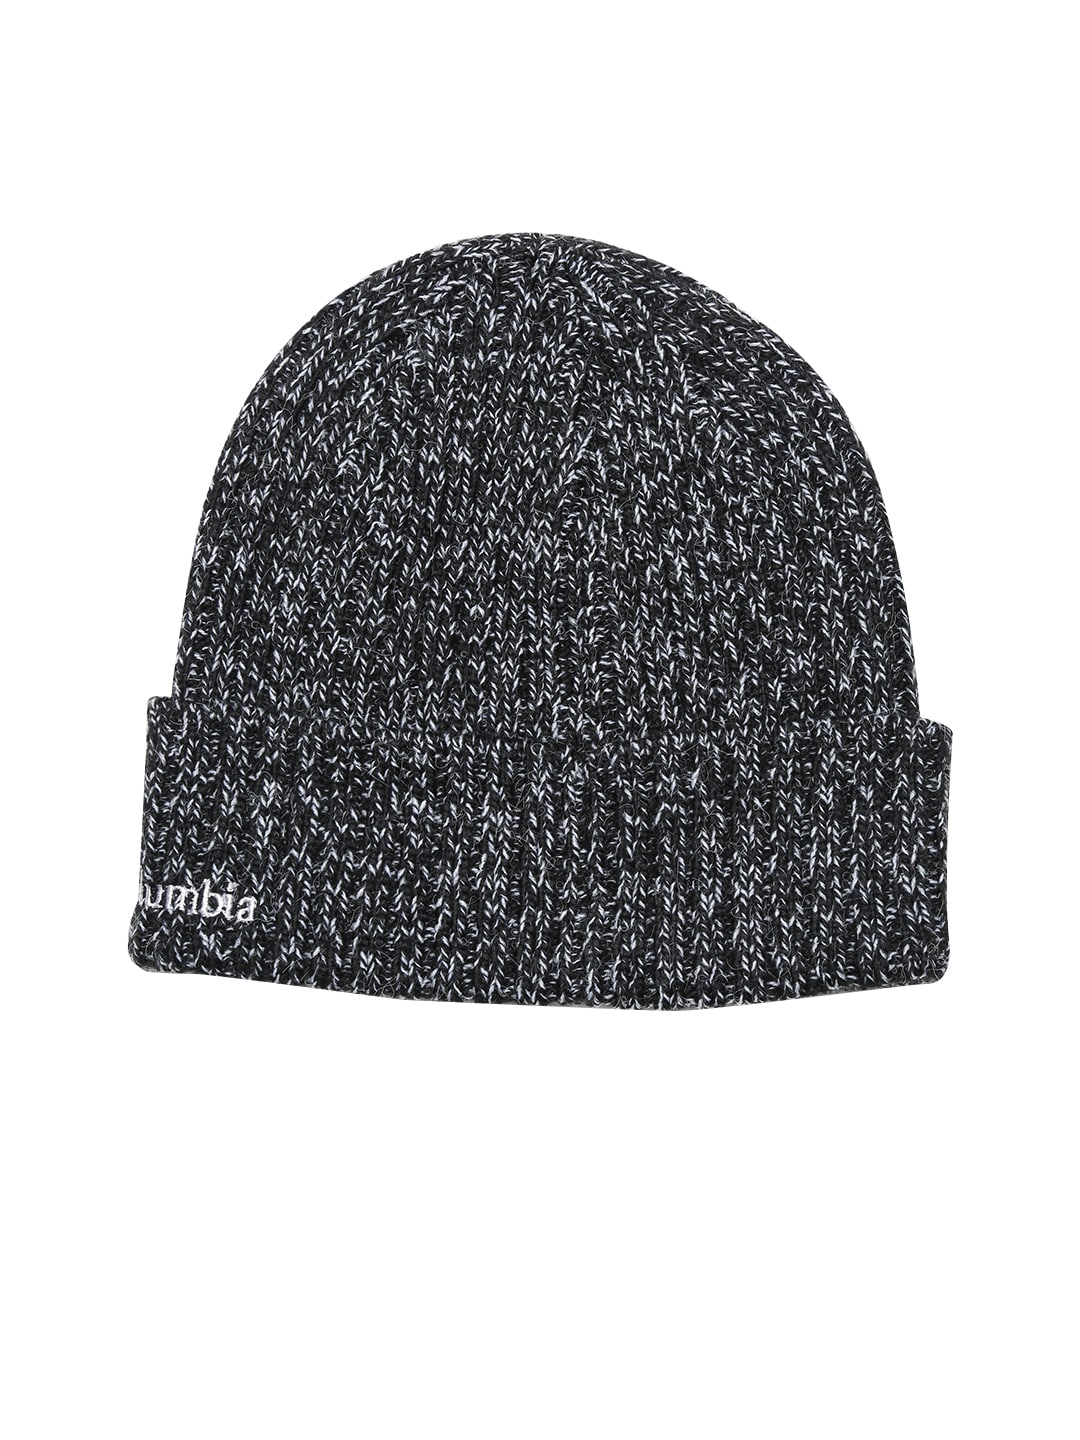 Columbia Headwear - Buy Columbia Headwear online in India 95b49672a0e